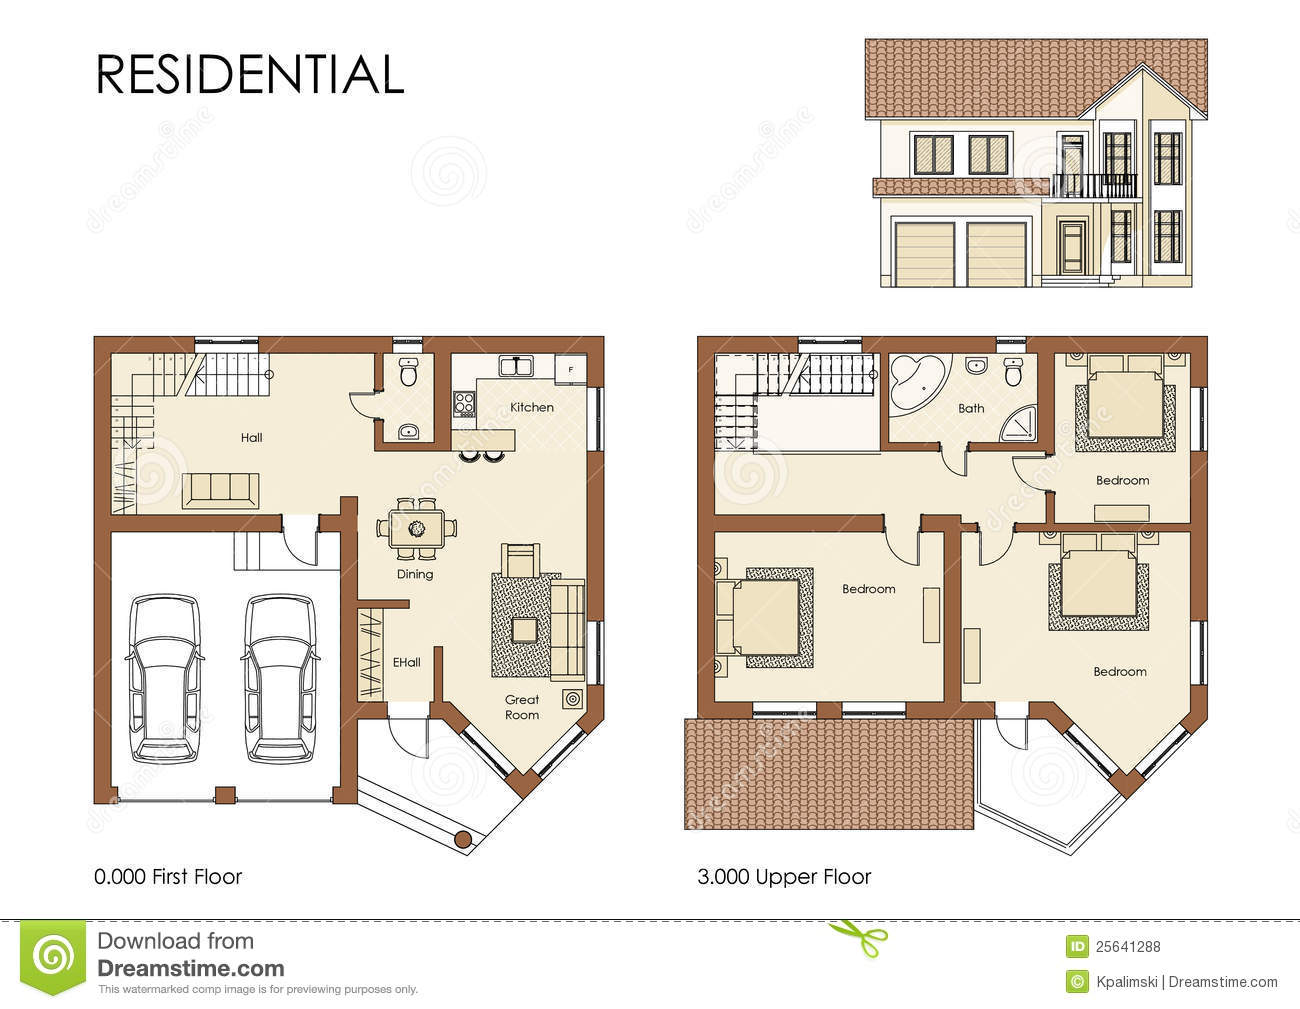 Residential house plan stock illustration illustration of for Blueprint home plans